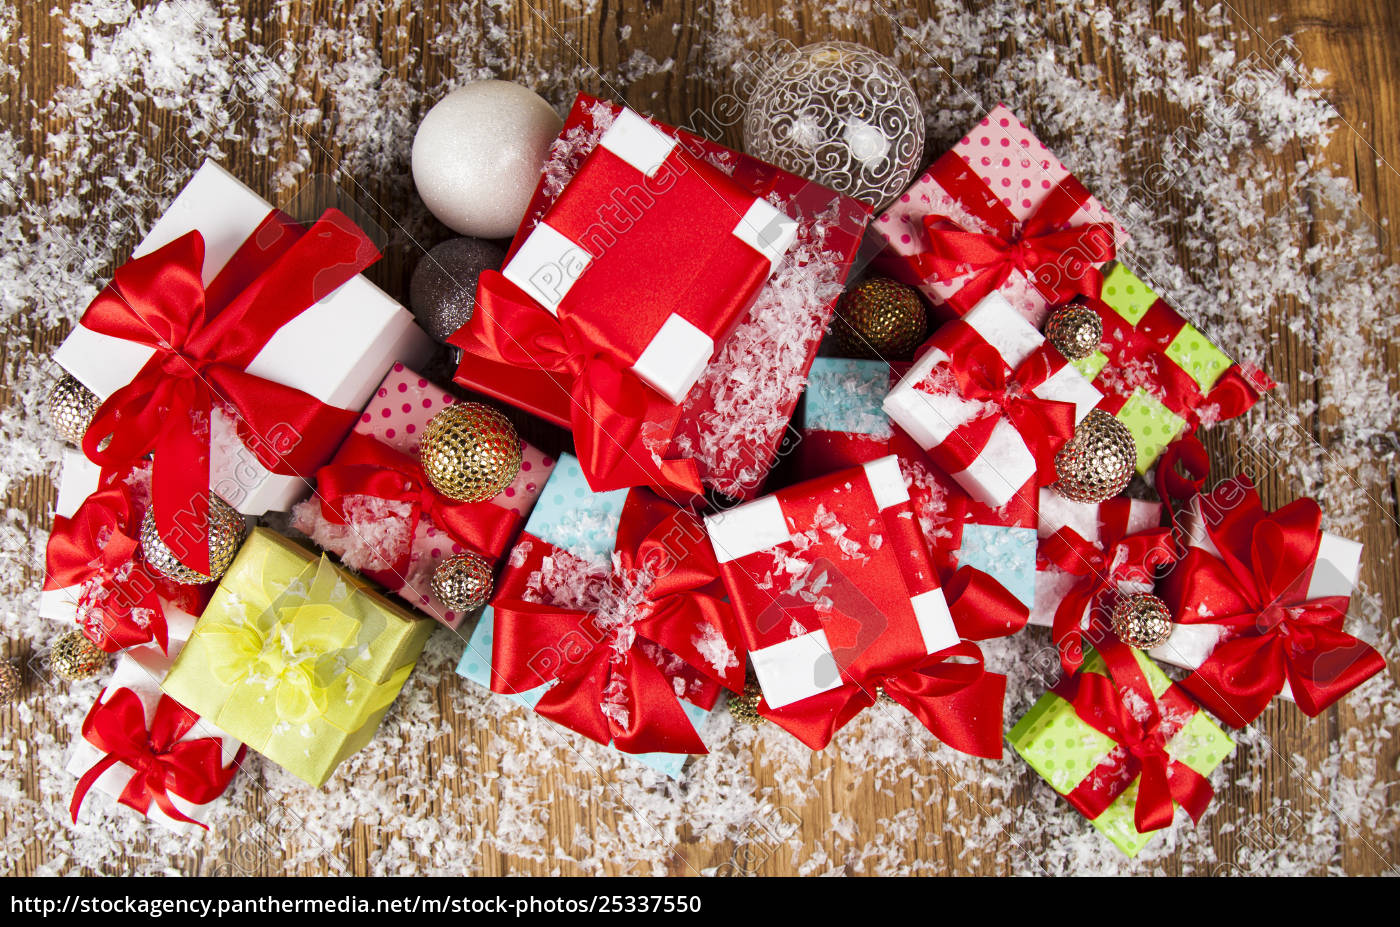 christmastime, celebration, , gift, box, with, red - 25337550